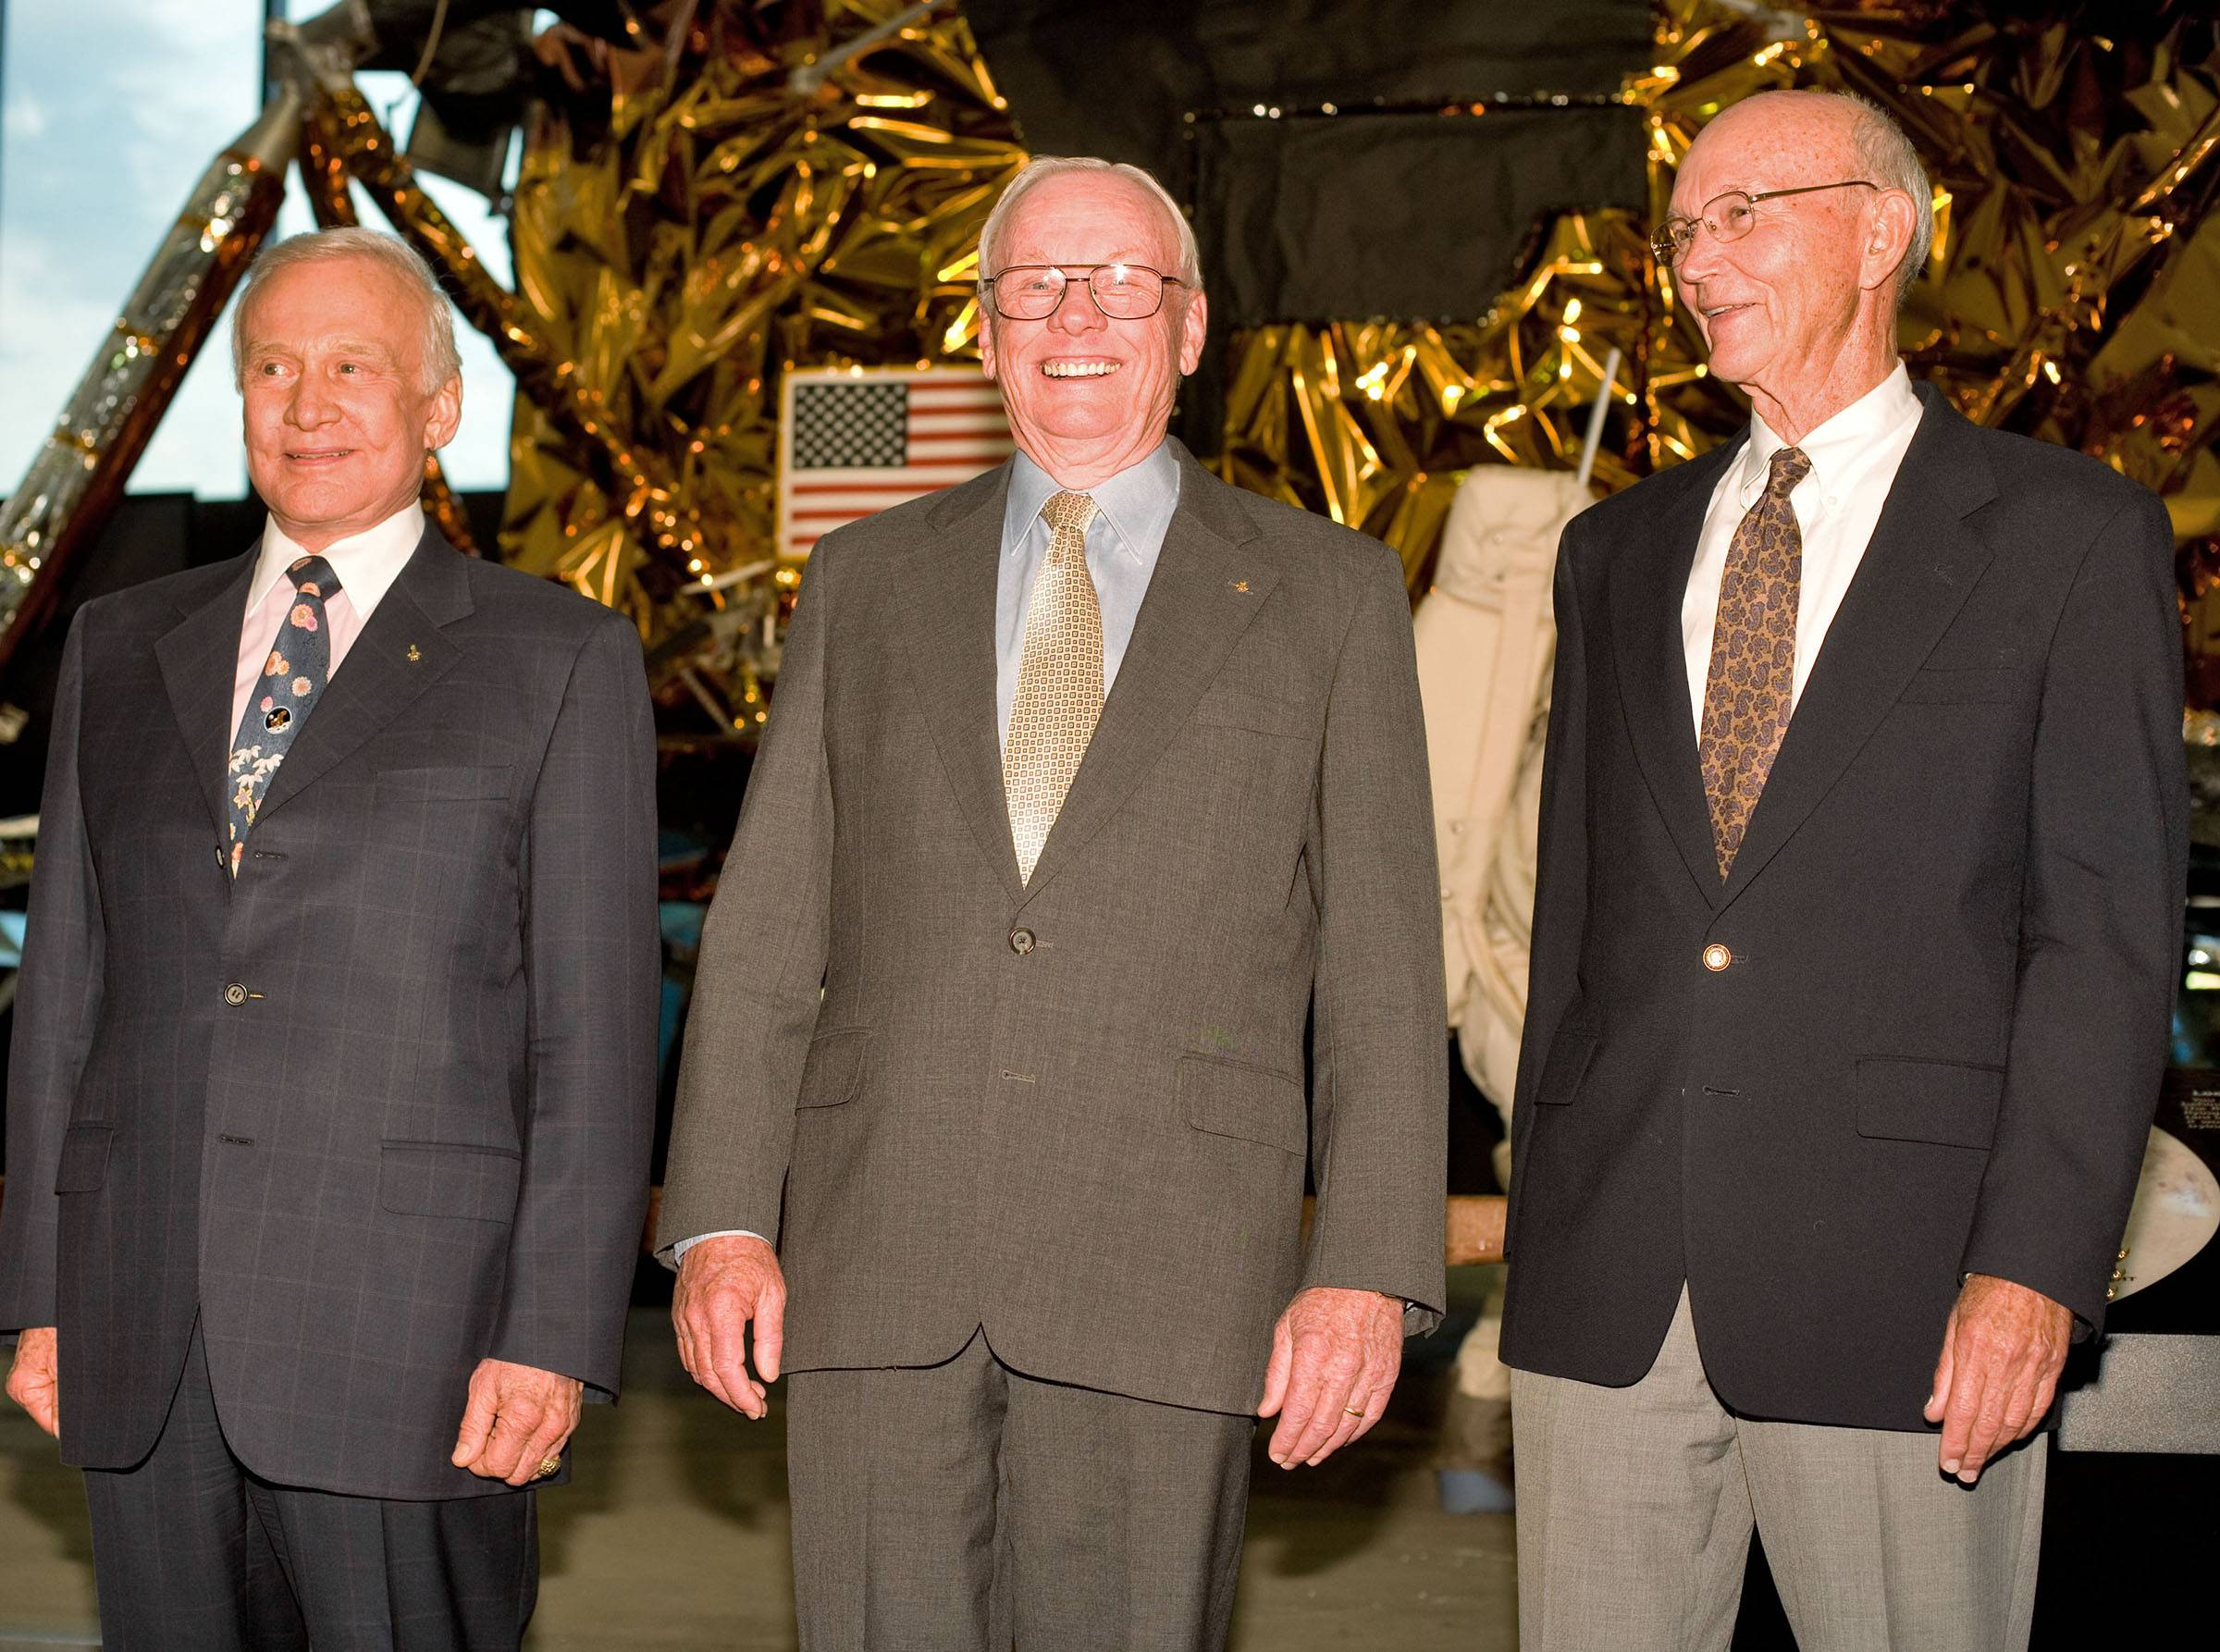 Buzz Aldrin, left, Neil Armstrong and Michael Collins, pose for a photograph in front of the Apollo 11 lunar module at the Smithsonian National Air and Space Museum in Washington on July 19, 2009. That year they also met with President Barack Obama in the White House, continuing a tradition.